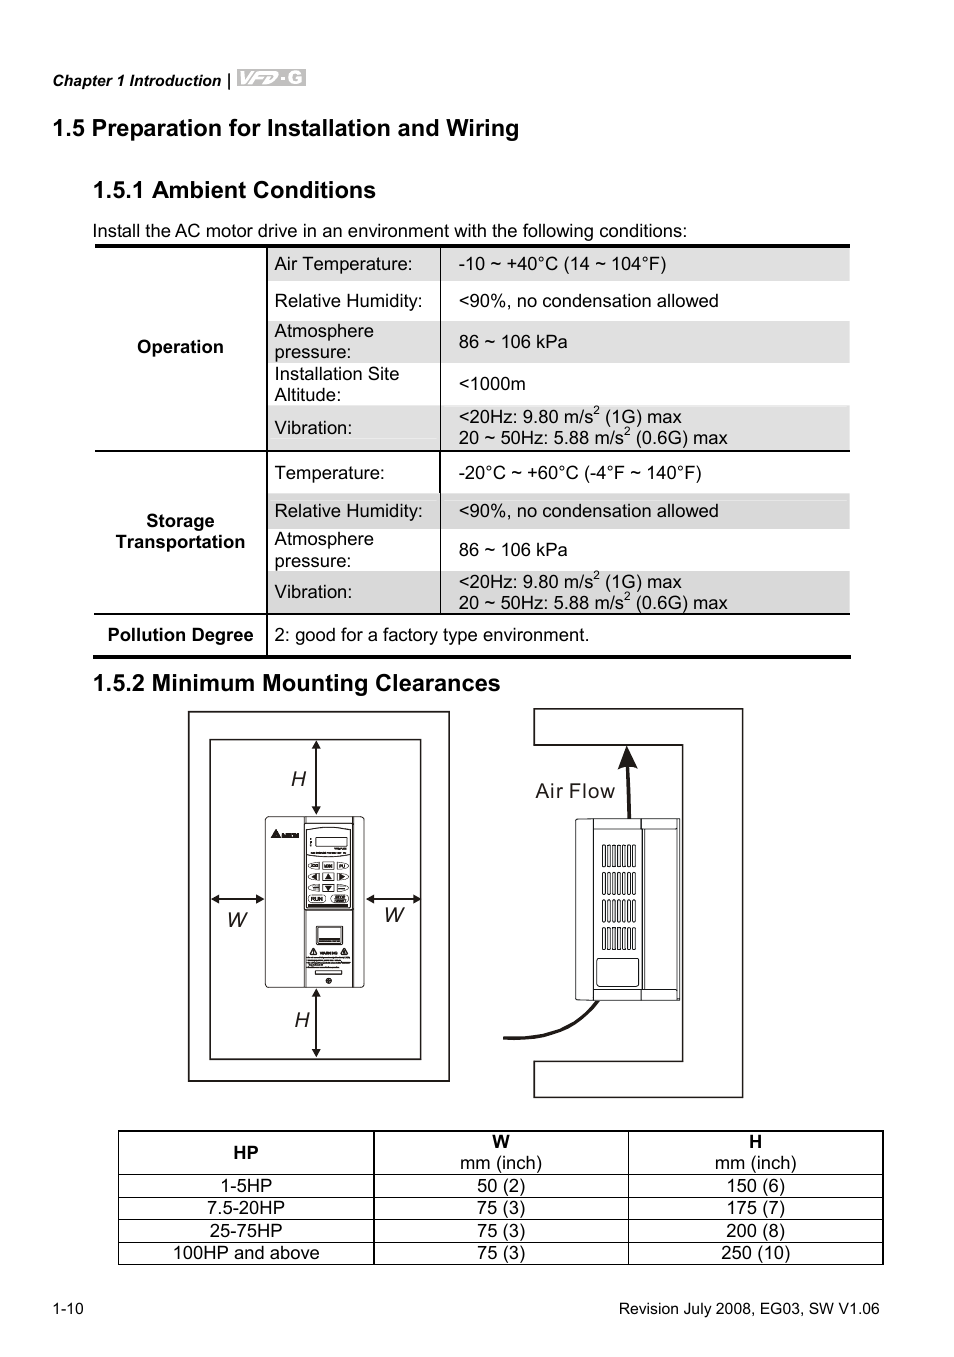 5 preparation for installation and wiring, 1 ambient conditions, 2 minimum  mounting clearances | Delta Electronics AC Motor Drive VFD-G User Manual |  Page ...